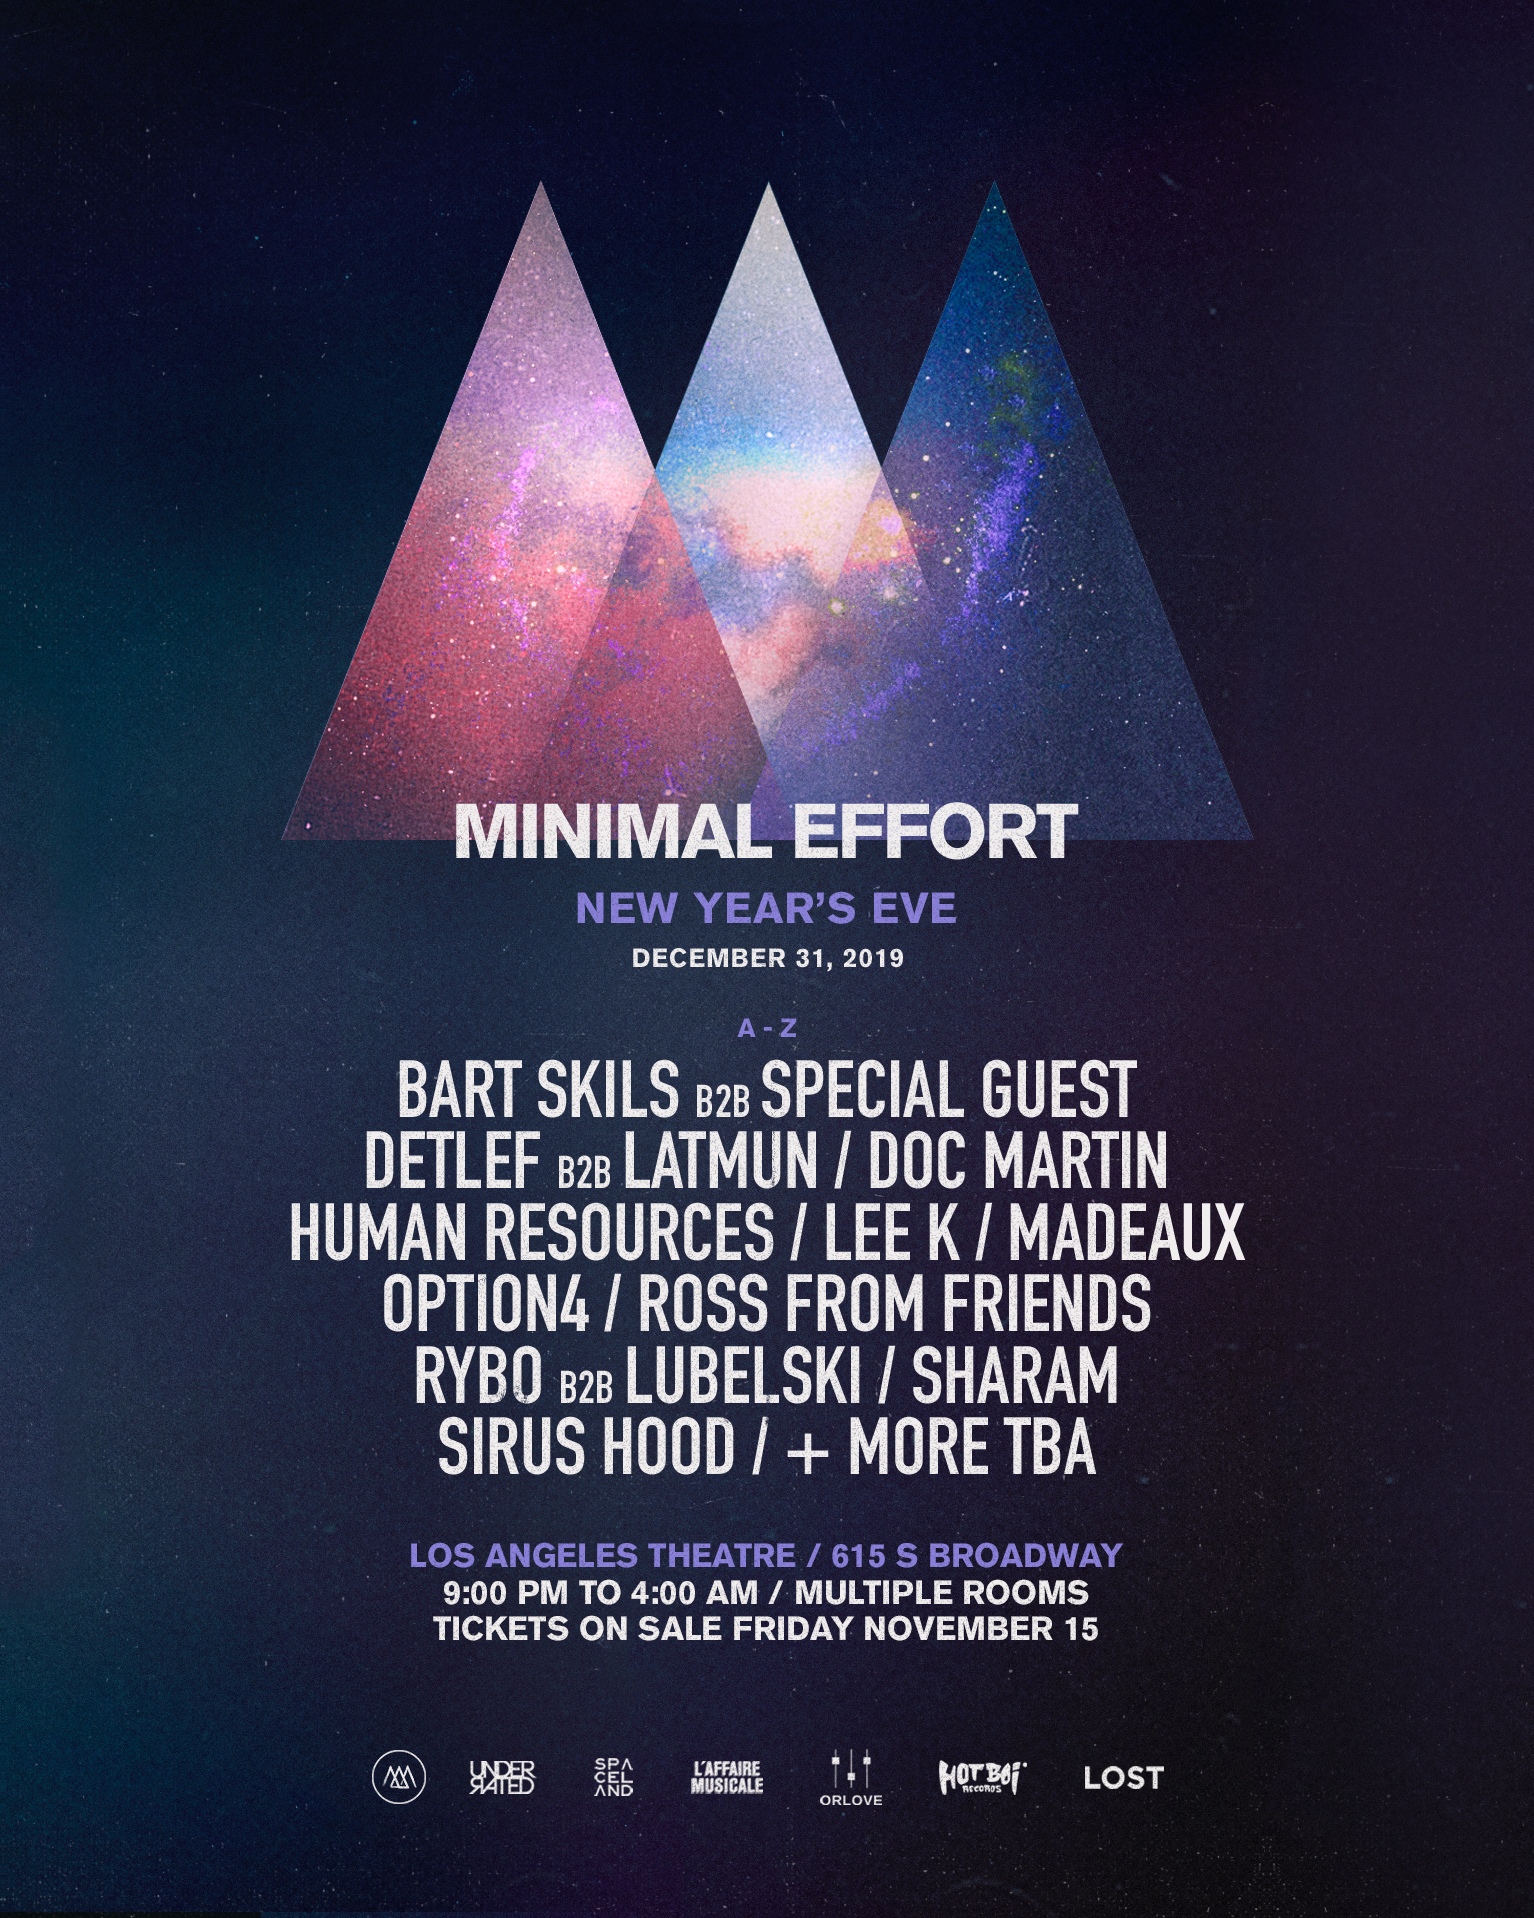 Minimal Effort: New Years Eve 2019 - Phase 1 Lineup